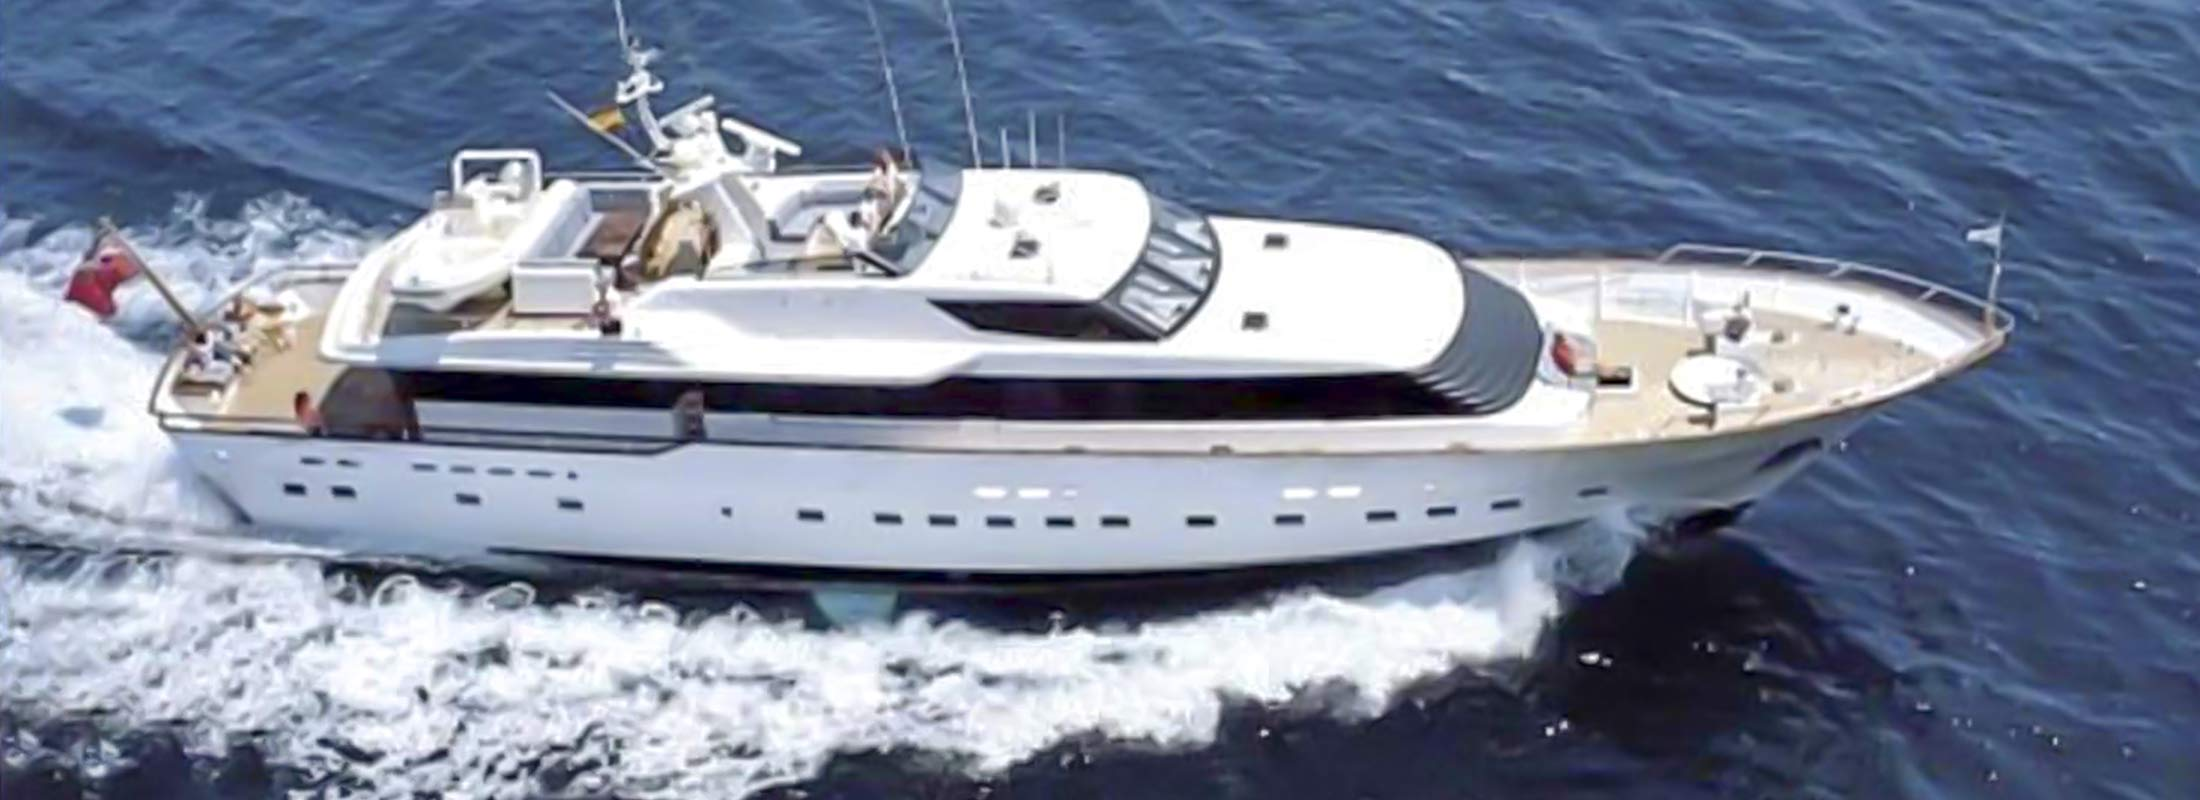 Atlantic Endeavour Motor Yacht for Charter Mediterranean slider 2